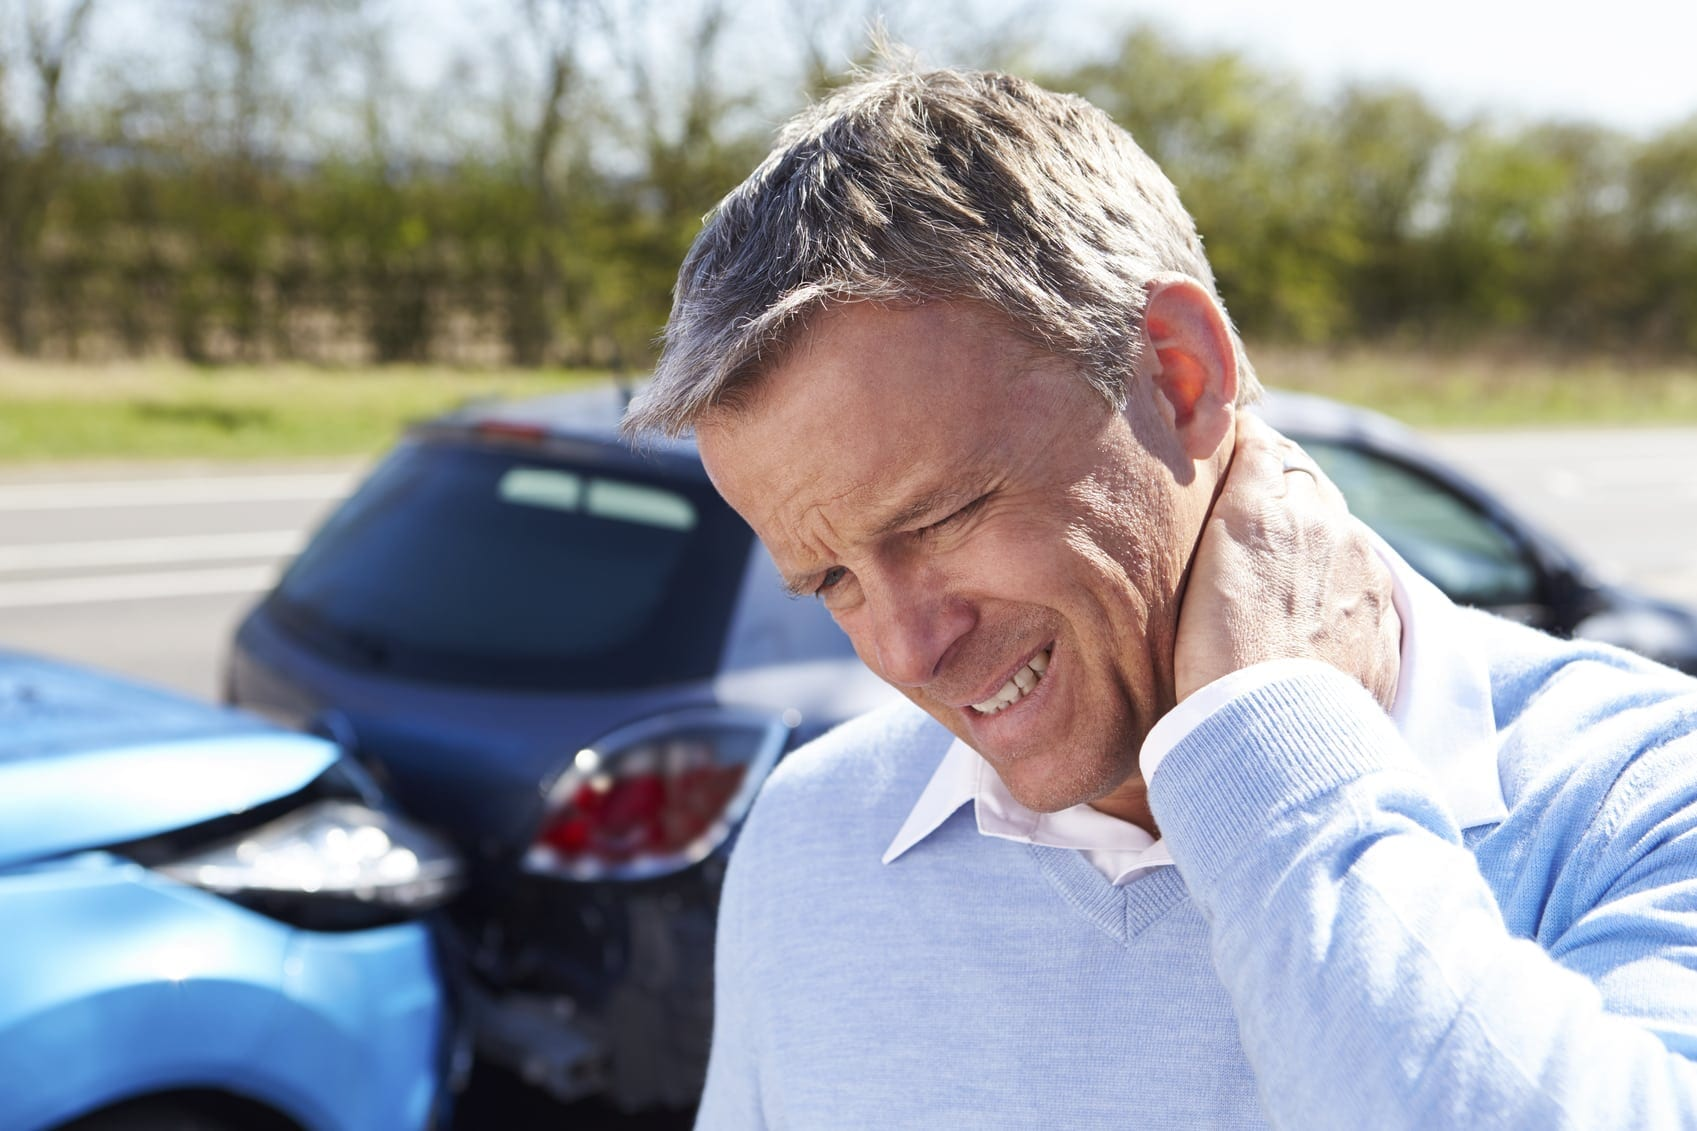 Male Driver Experiencing Neck Pain After A Rear End Car Accident